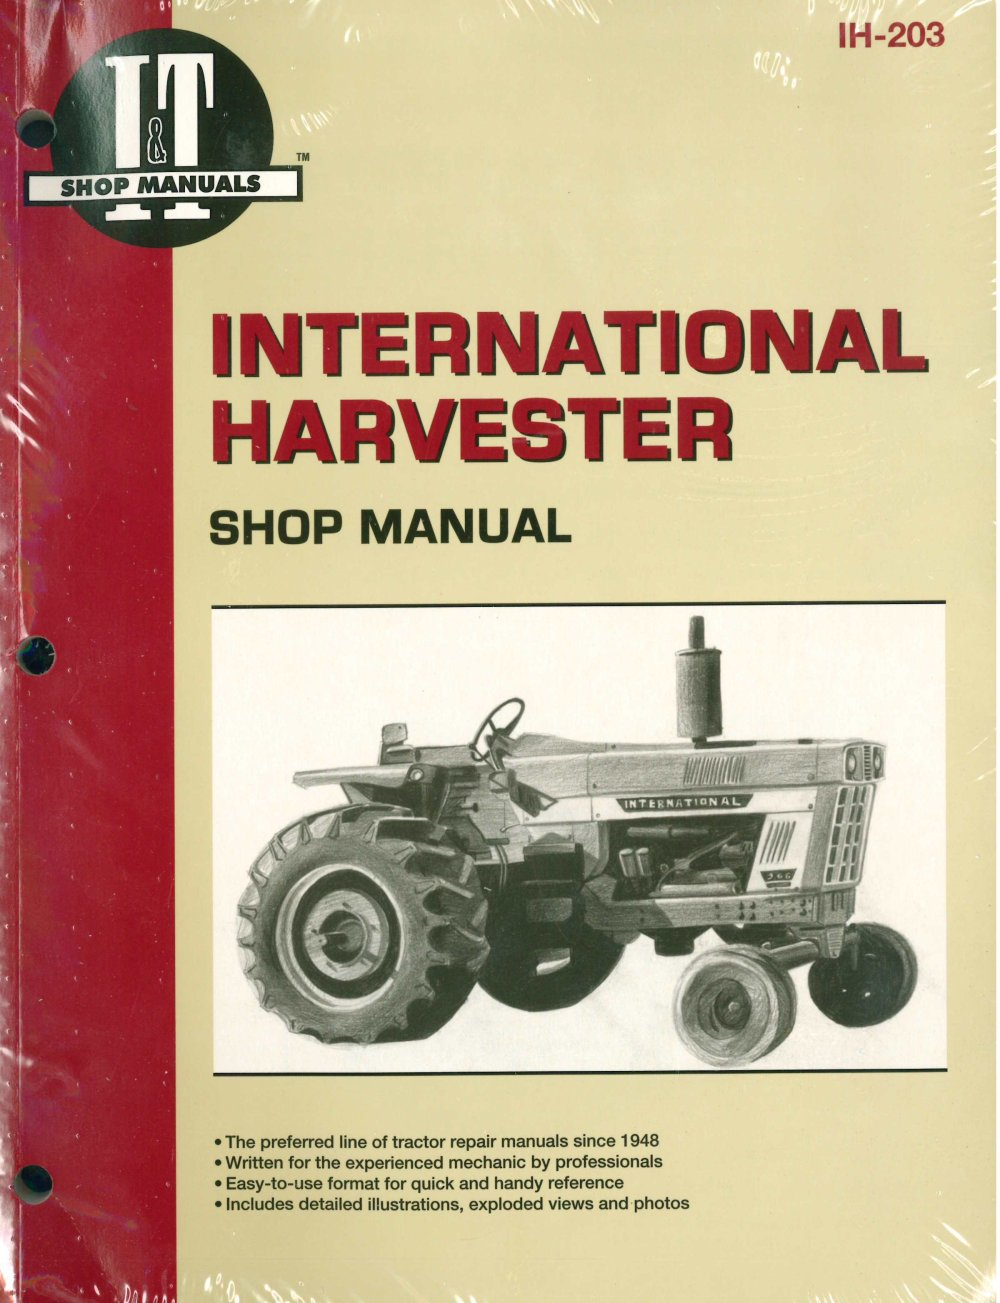 medium resolution of  international tractor wiring diagram international harvester tractor service manual 454 464 484 574 584 674 766 786 826 886 966